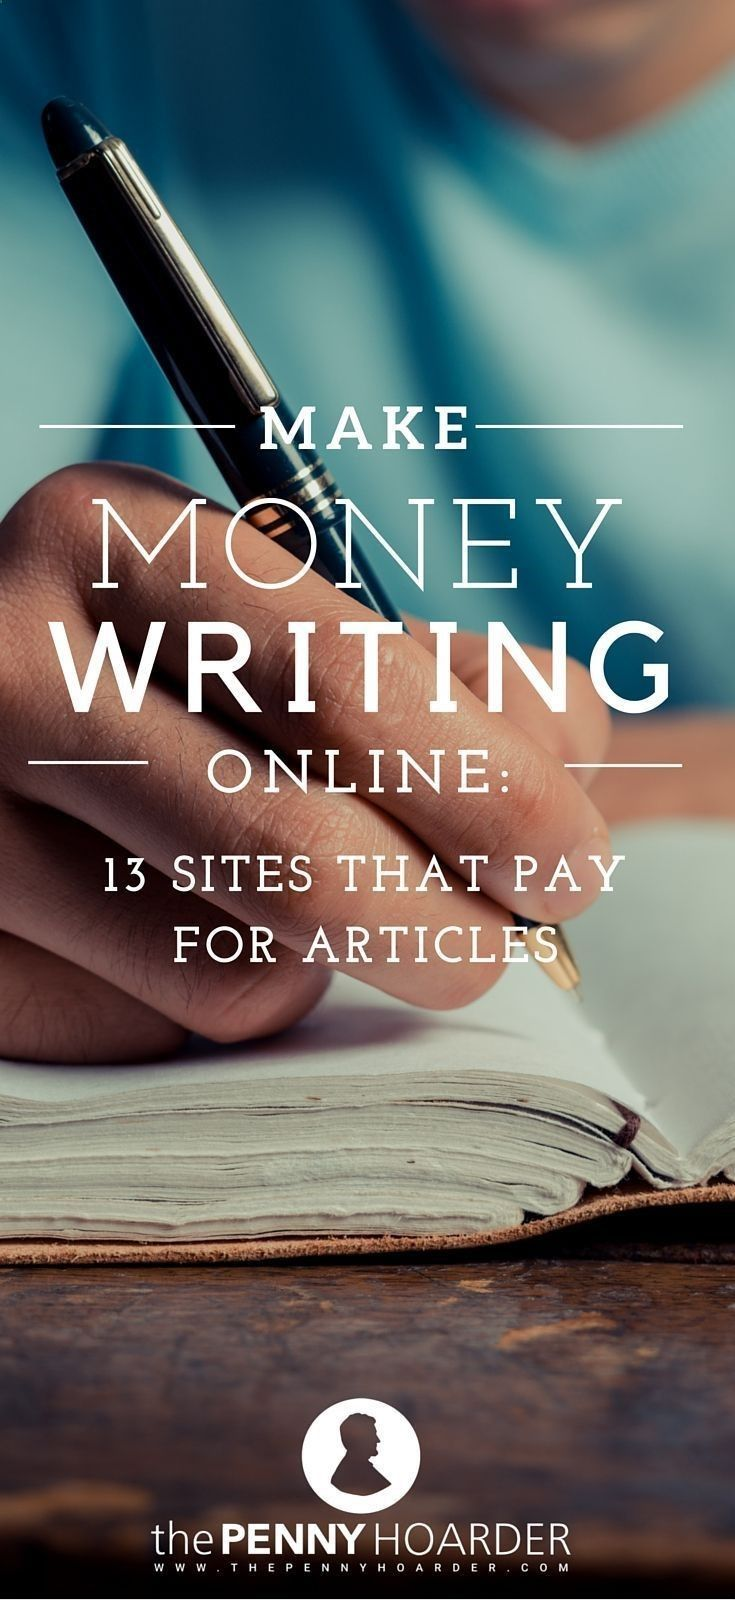 Earn Money From Home Earn Money Online Want to get paid to write? We've put together a quick list of sites that pay for articles, from those that pay pennies per click to the more lucrative -- and competitive -- fixed-rate opportunities. - The Penny Hoarder www.thepennyhoard... Heres Your Opportunity To CLONE My Entire Proven Internet Business System Today! You may have signed up to take paid surveys in the past and didn't make any money because you didn't know the correct way to get s...